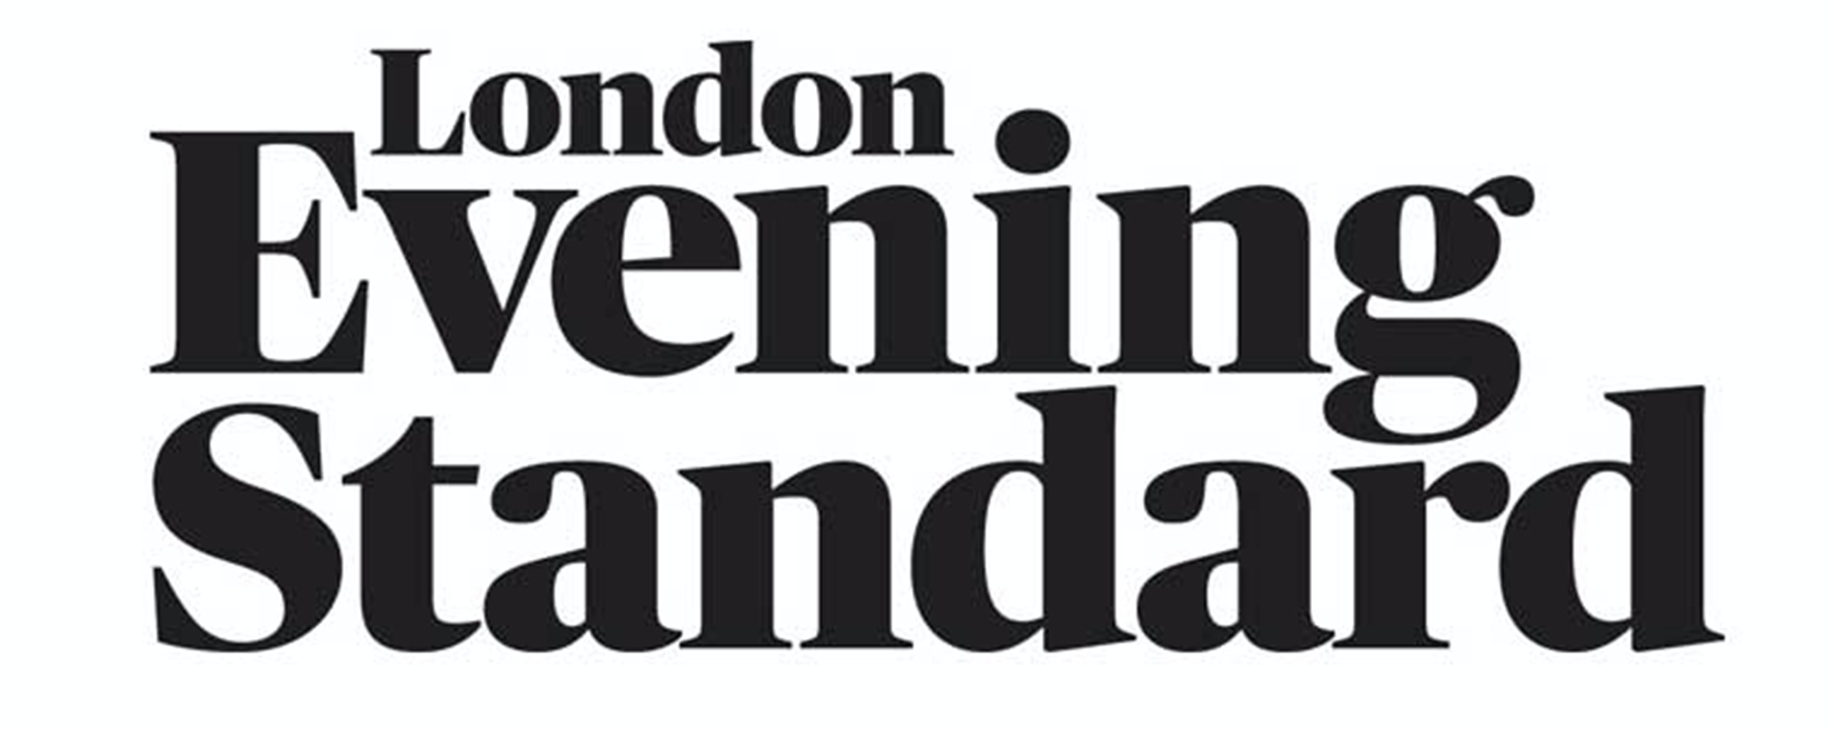 Evening Standard, logo, press, Fashion Innovation Agency